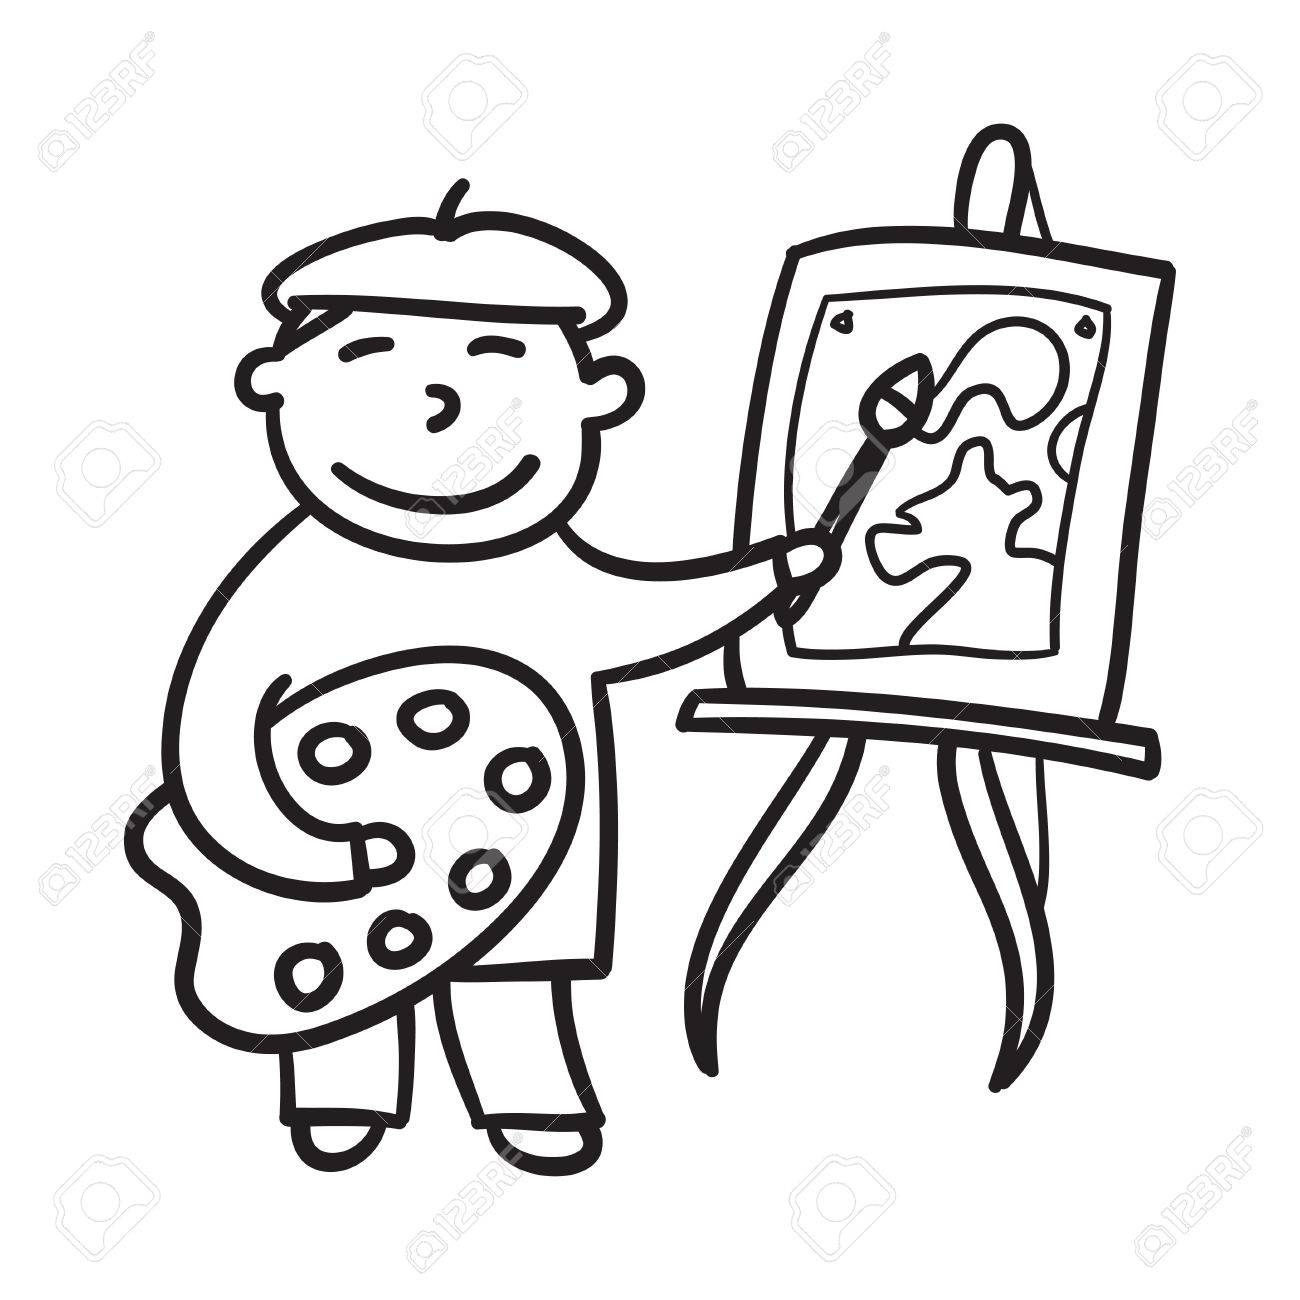 Child Painting Clipart Black And White.